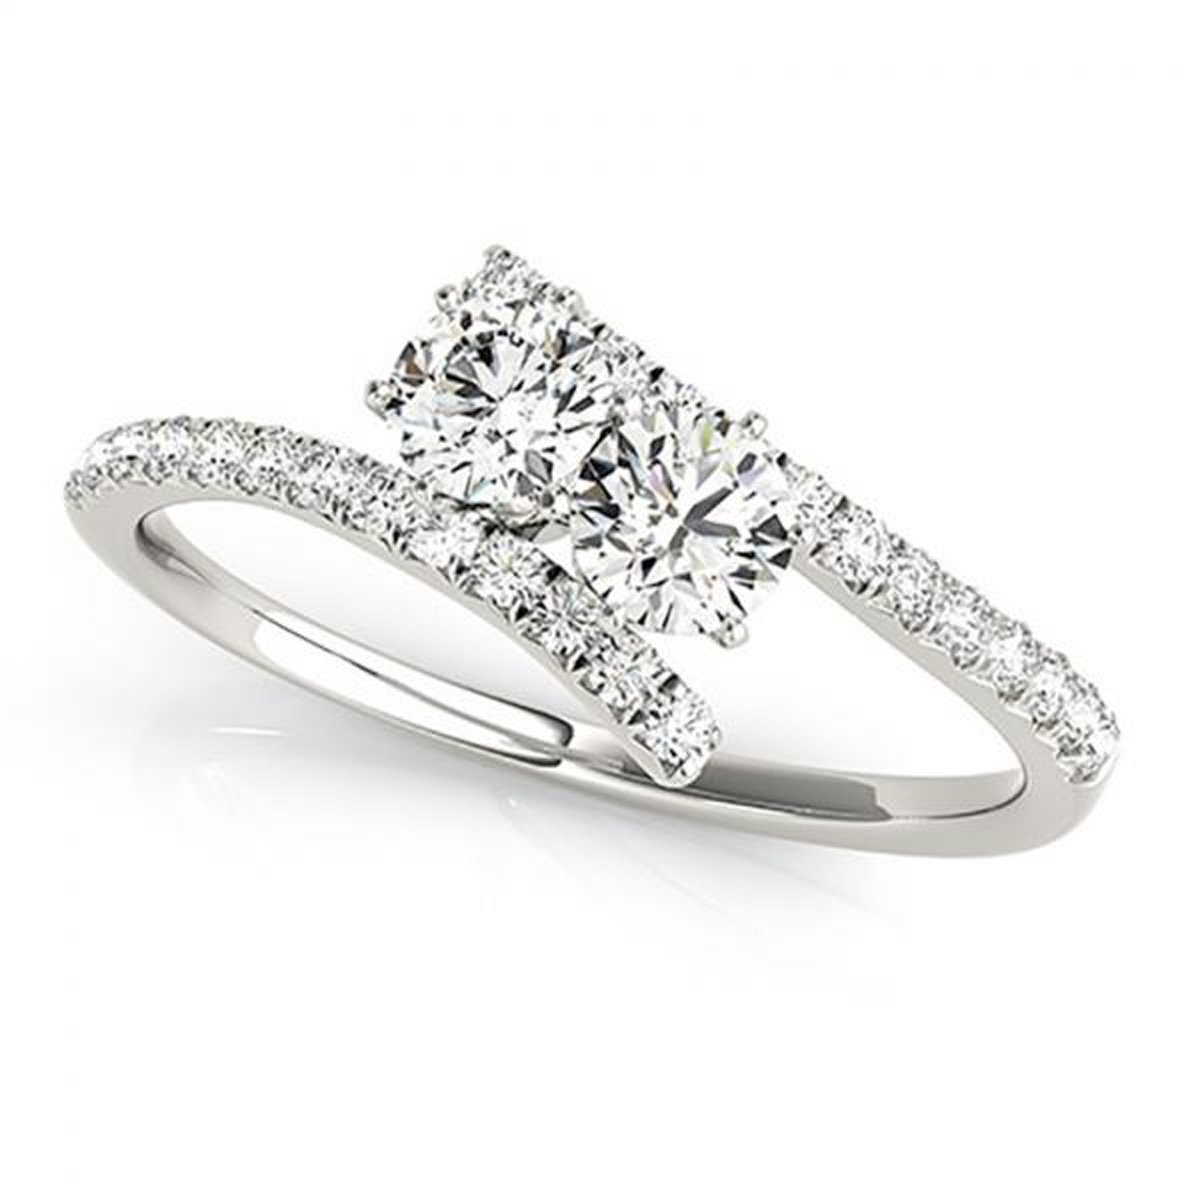 Star Retail CZ Simulated Lab Created Diamond Tension Style Shank Forever US Two Stone Ring 925 Sterling Silver Plated 0.75ct